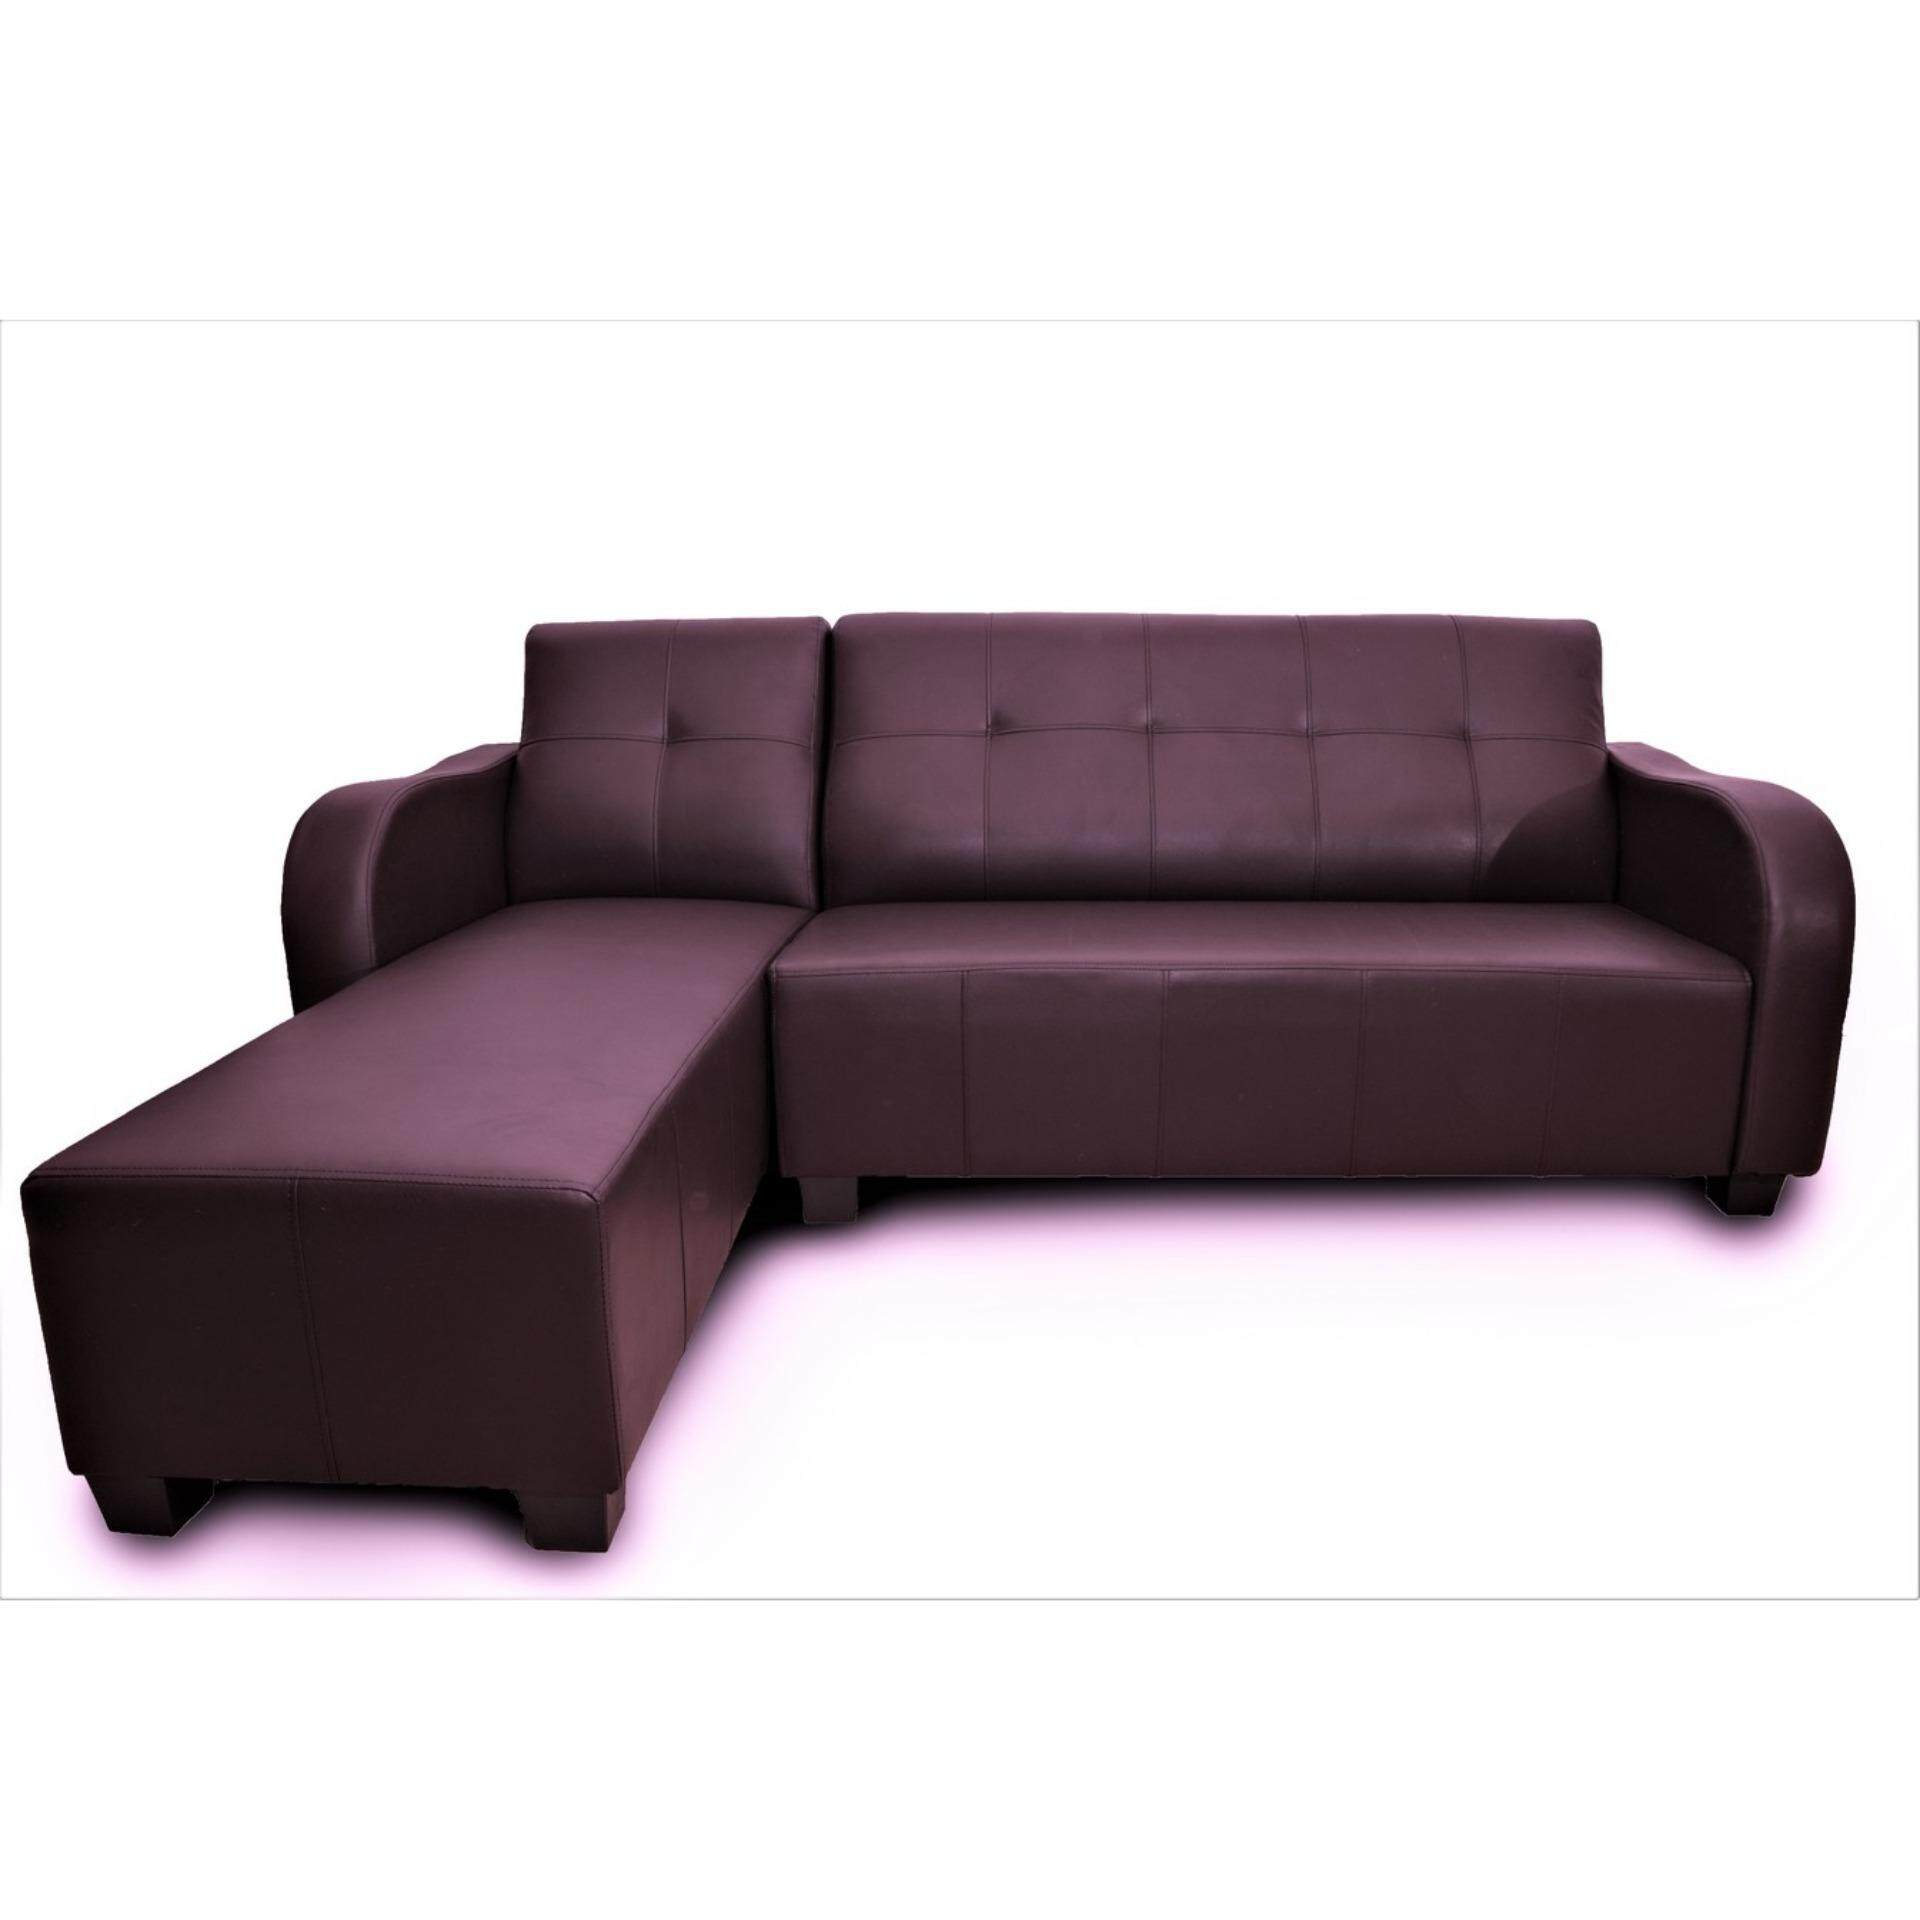 L Shape Sofa-Right( A.leather) By Creative Furniture 89 Industry.